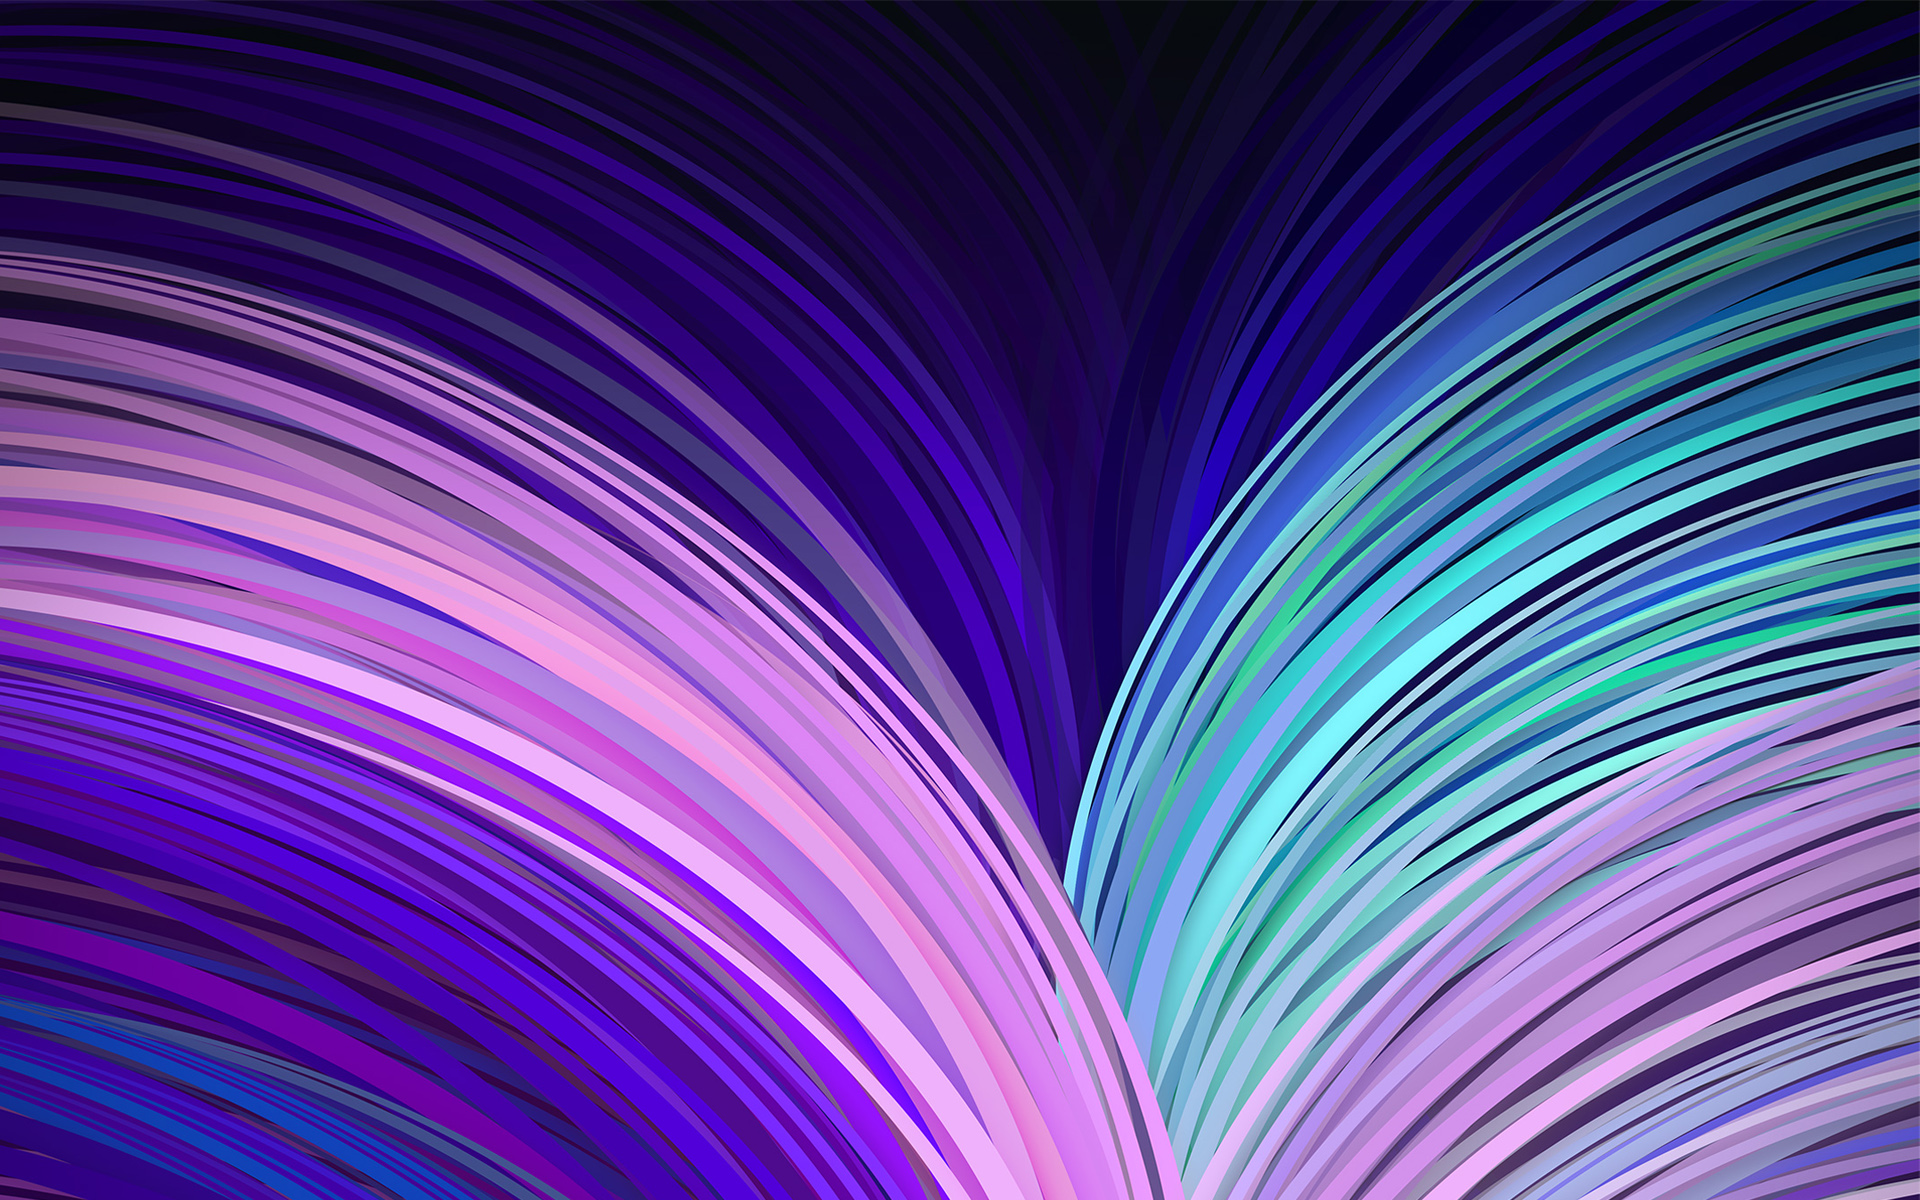 3d Hd Neon Wallpaper PC Android iPhone and iPad Wallpapers 1920x1200